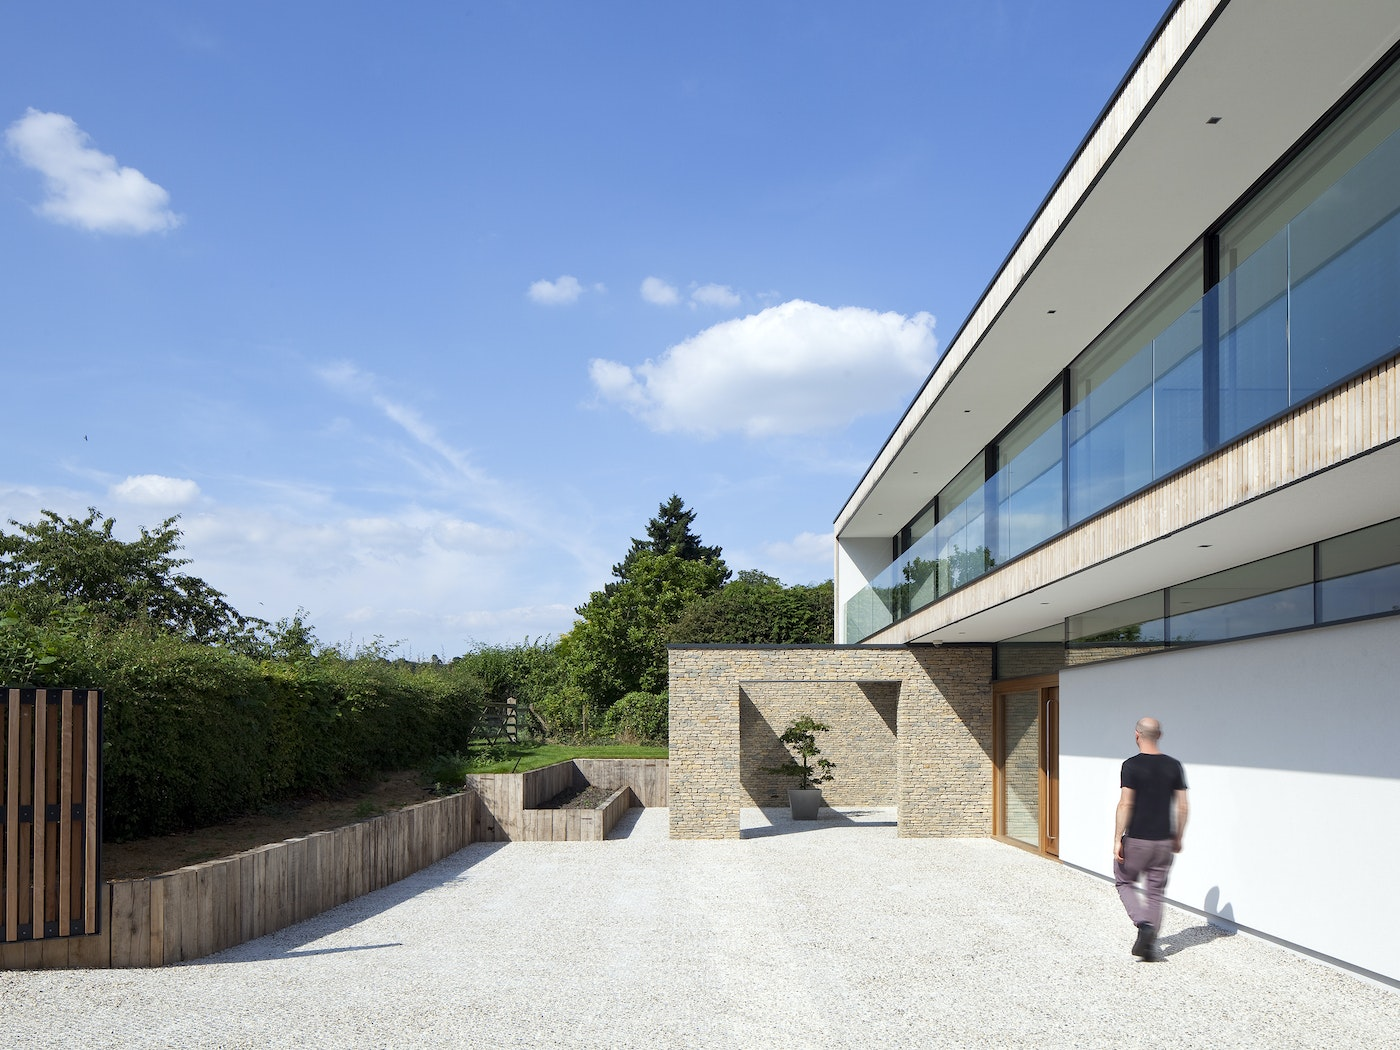 Unusual design details make the external view of this minimalist house extra interesting